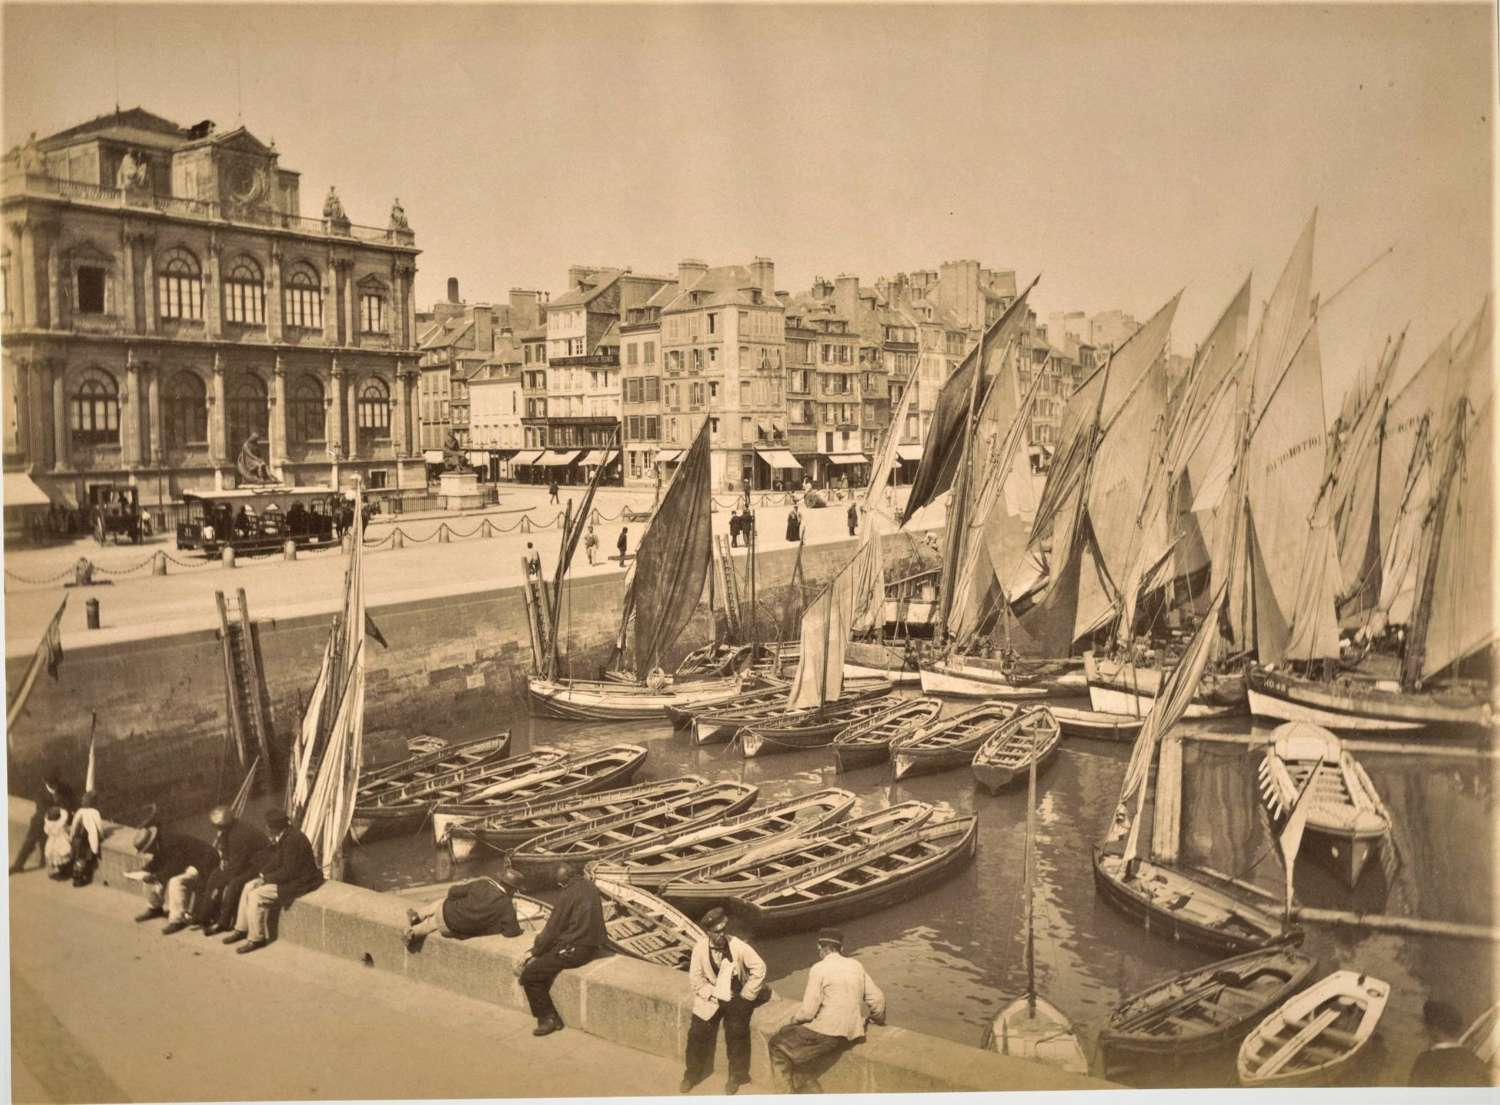 View of Le HavreFrance C1880